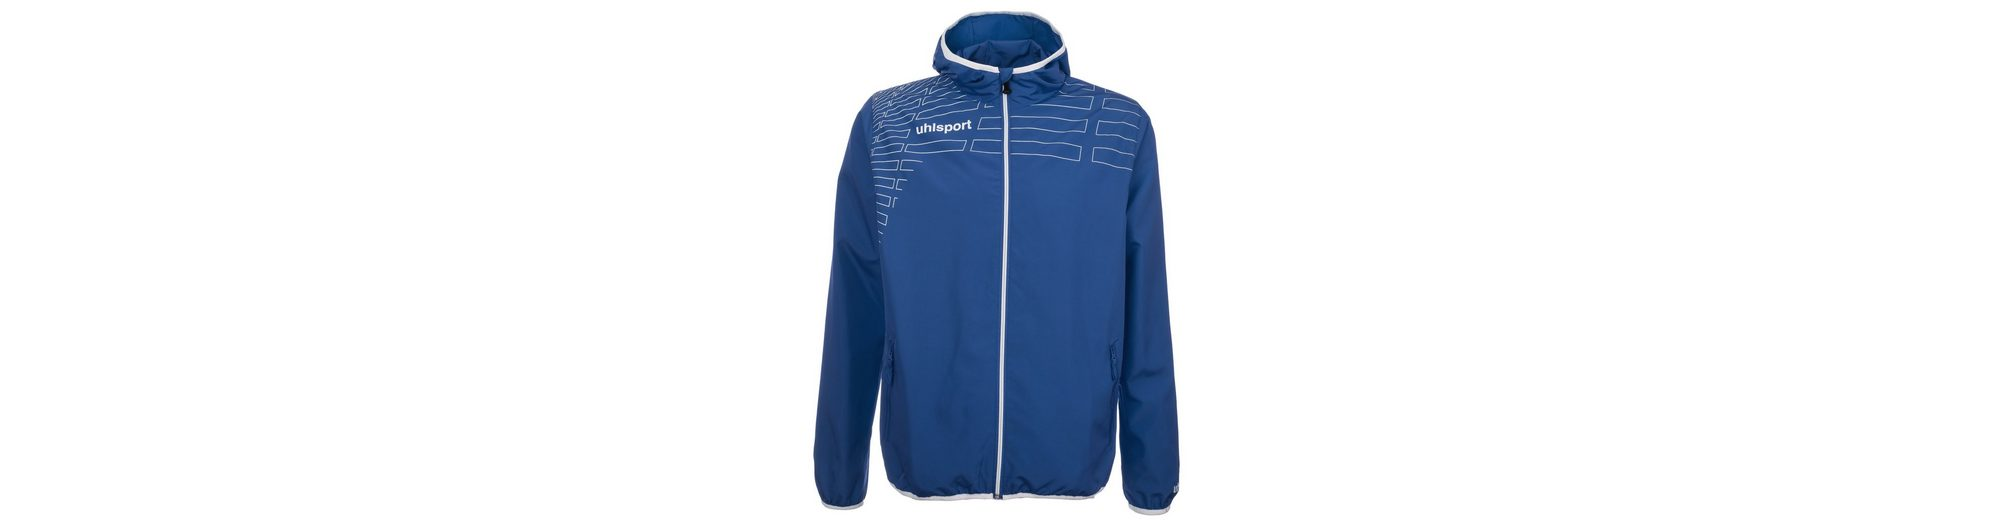 UHLSPORT Match Präsentationsjacke Herren Günstig Kaufen Besuch Neu Amazon Footaction 100% Authentisch Günstig Online Günstig Kaufen Shop Mit Mastercard IZN99M